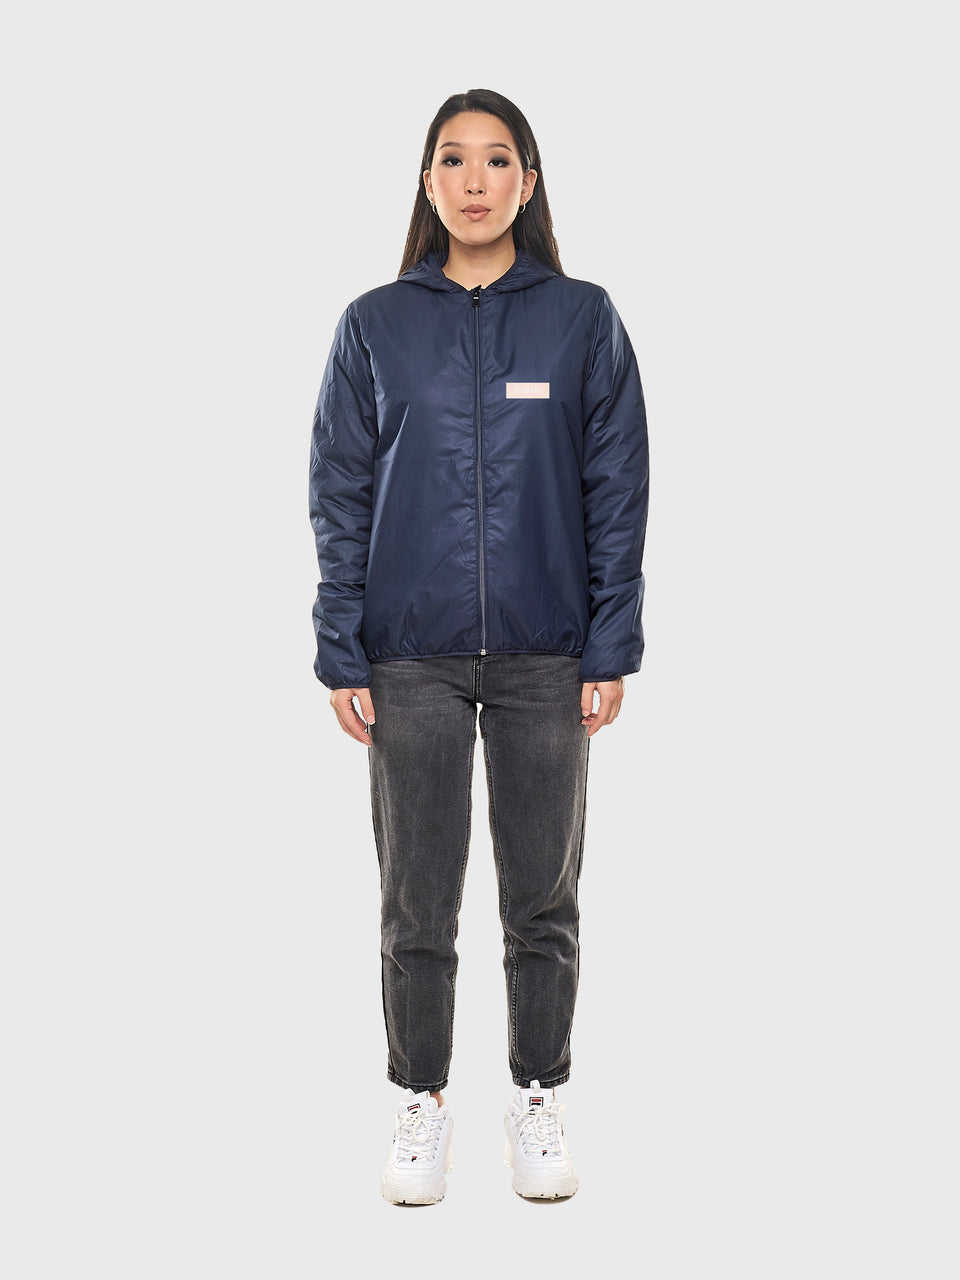 I.AM EL&N - Navy - Rain jacket